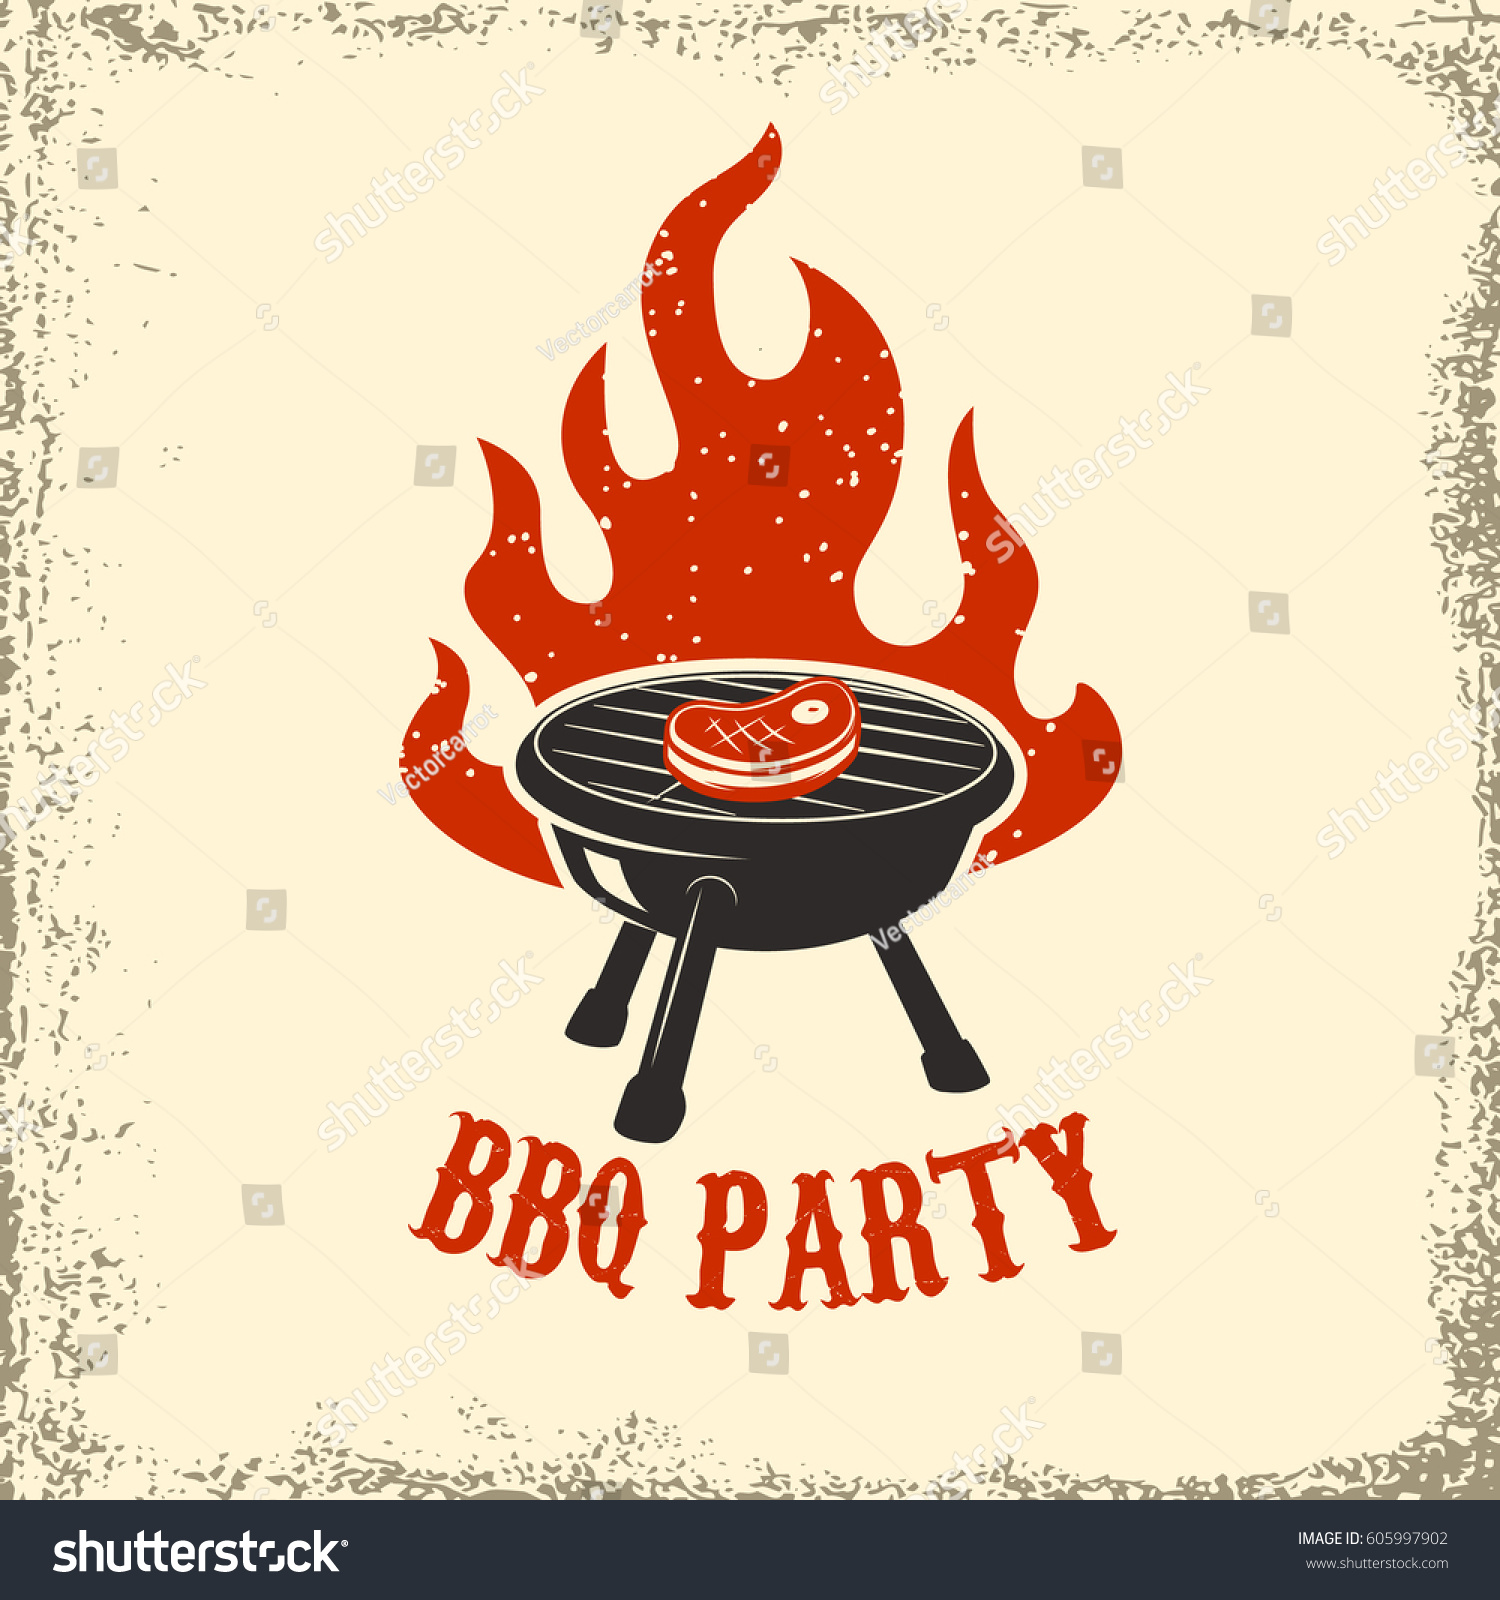 bbq party grill fire on grunge stock vector 605997902 shutterstock